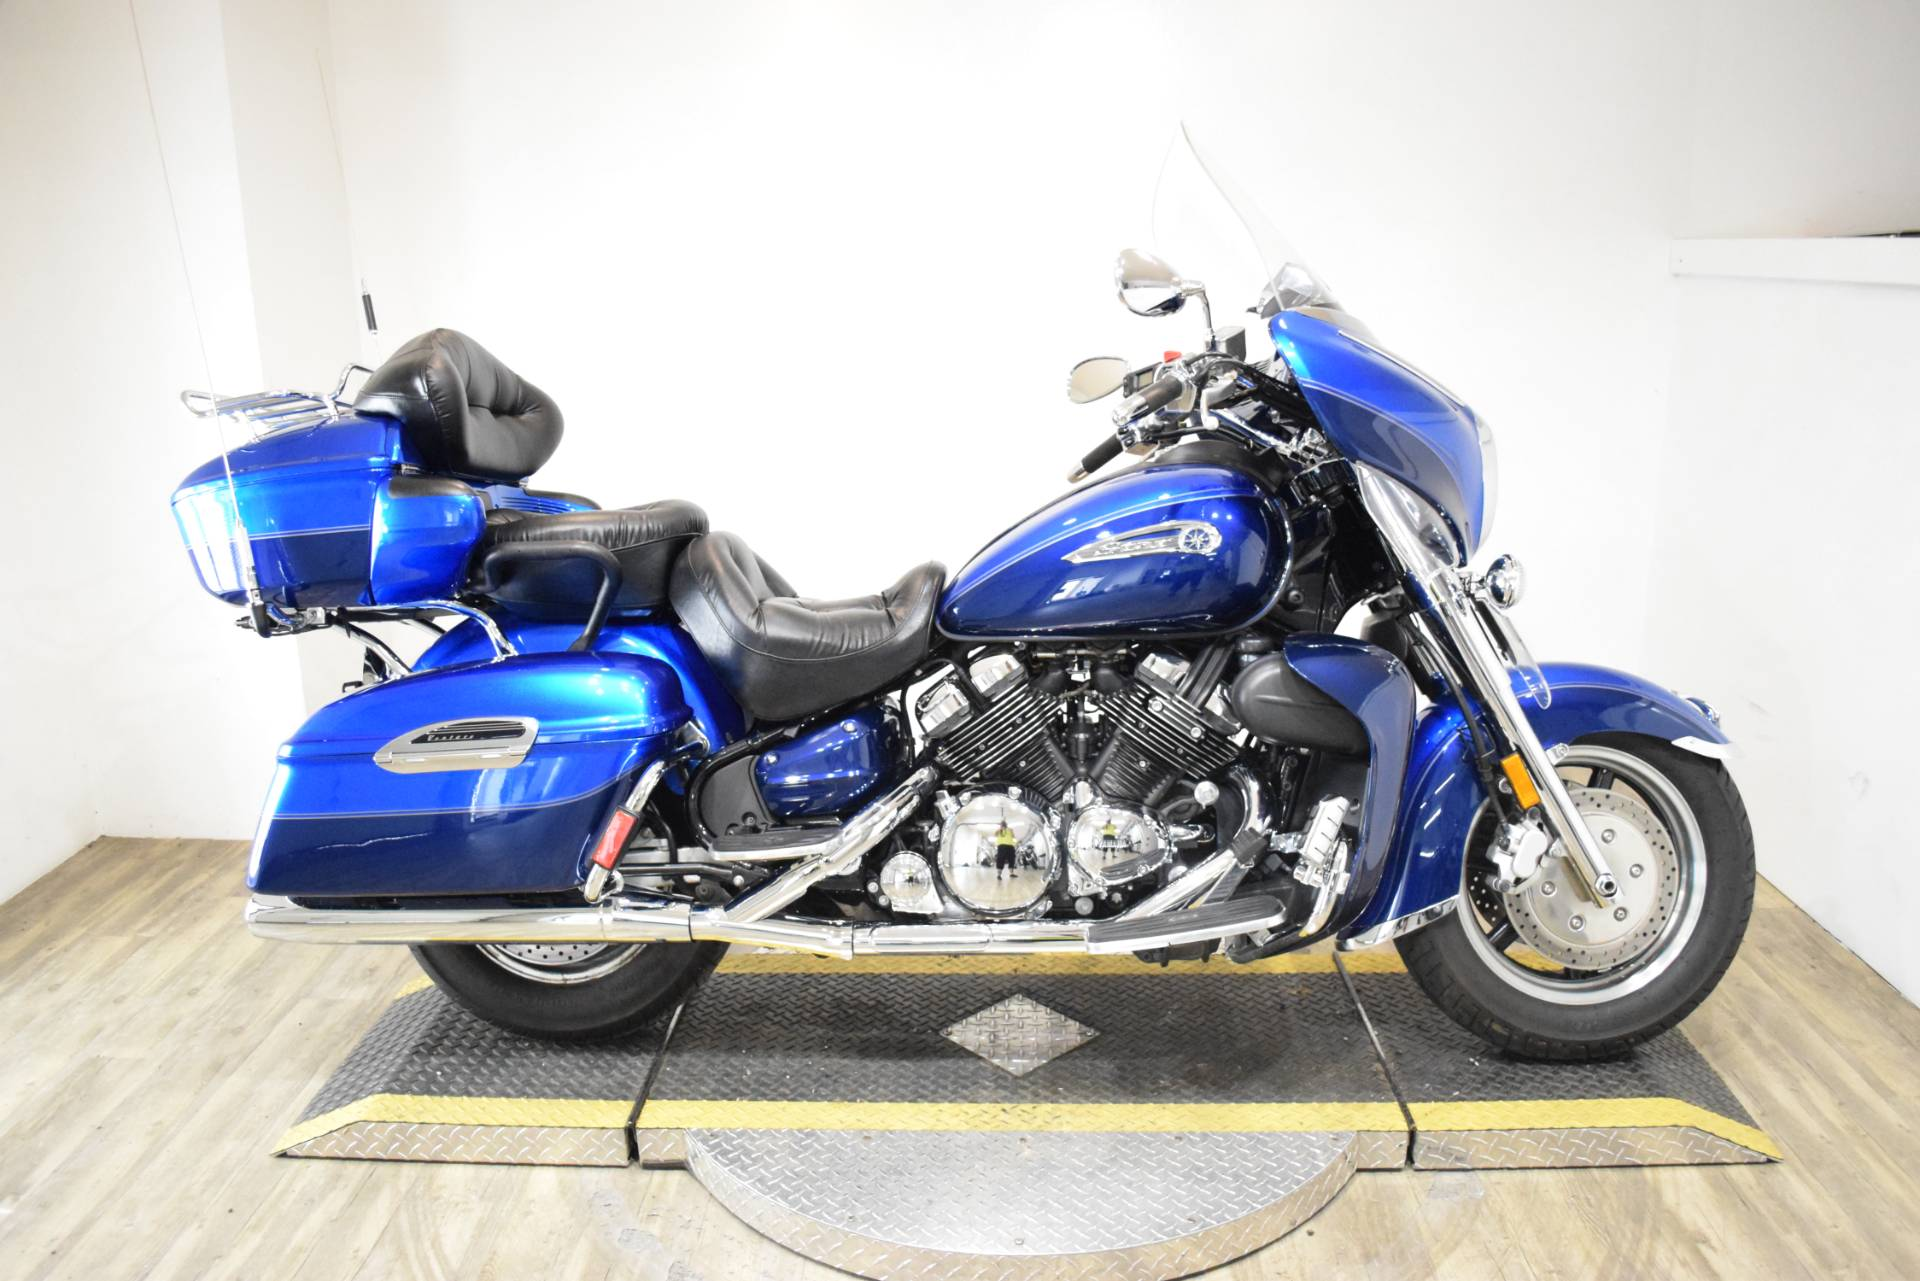 2011 Yamaha Royal Star Venture S in Wauconda, Illinois - Photo 1